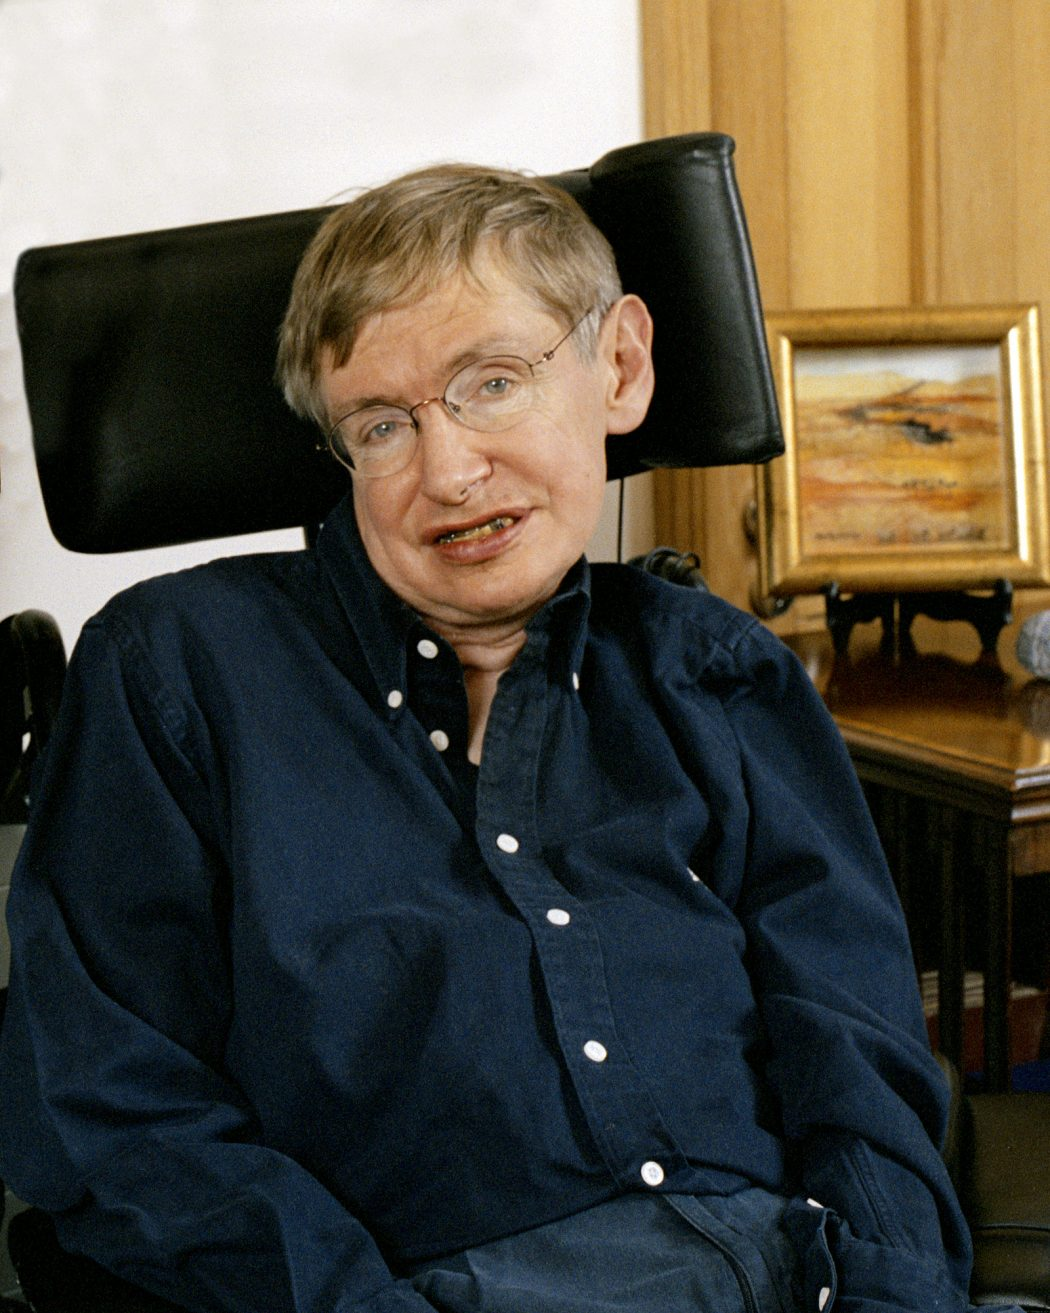 stephen-hawking-at-home Top 10 Most Effective Persons in the World